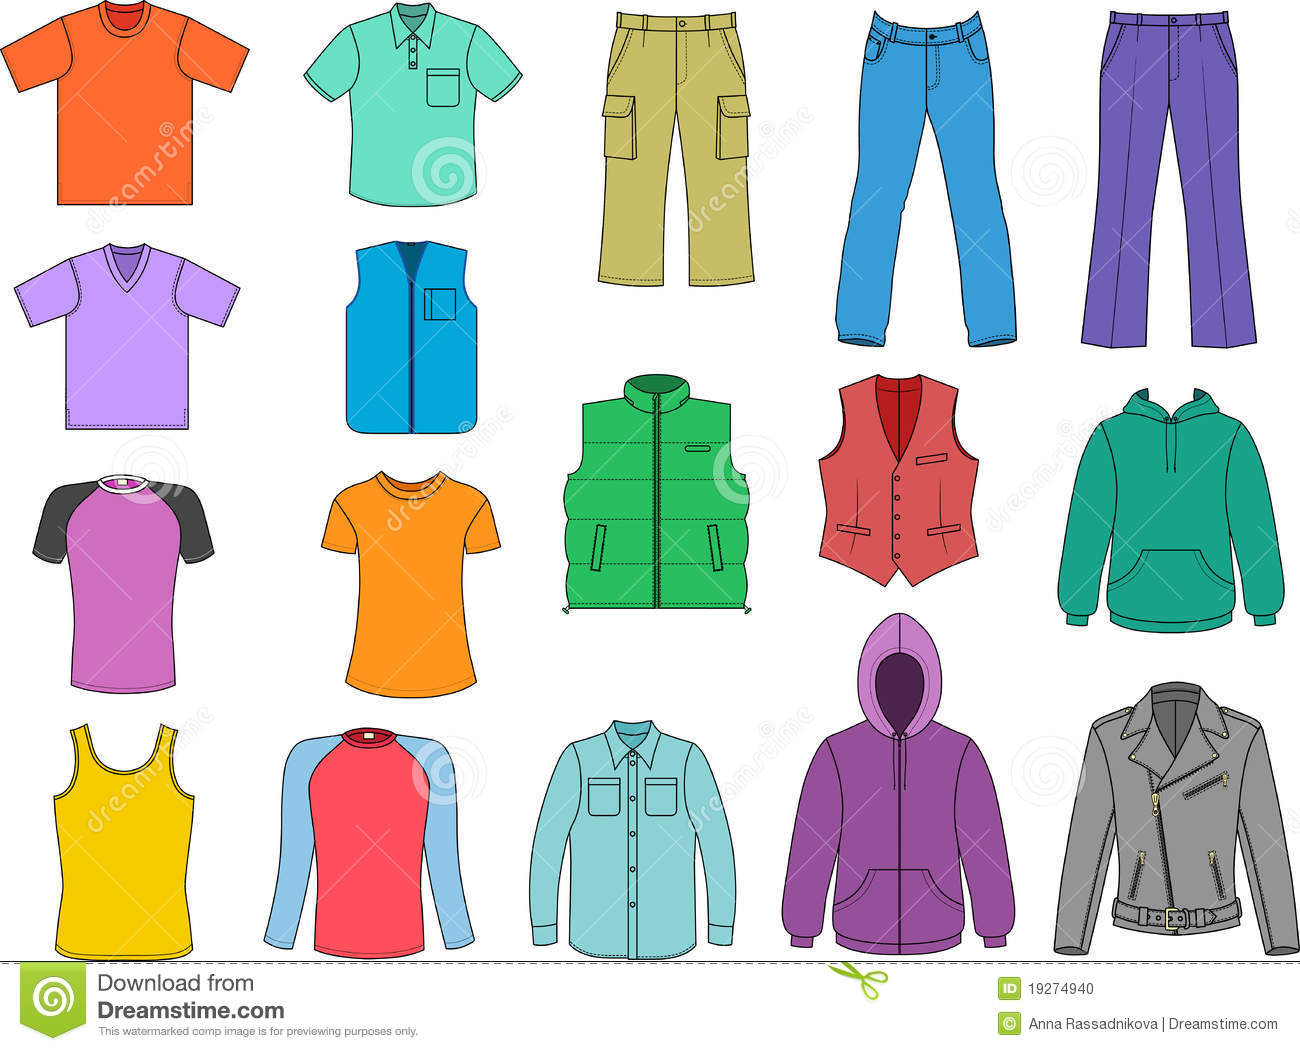 Clothing Clip Art Women. Man Clothes Col-Clothing clip art women. Man clothes colored collection-11